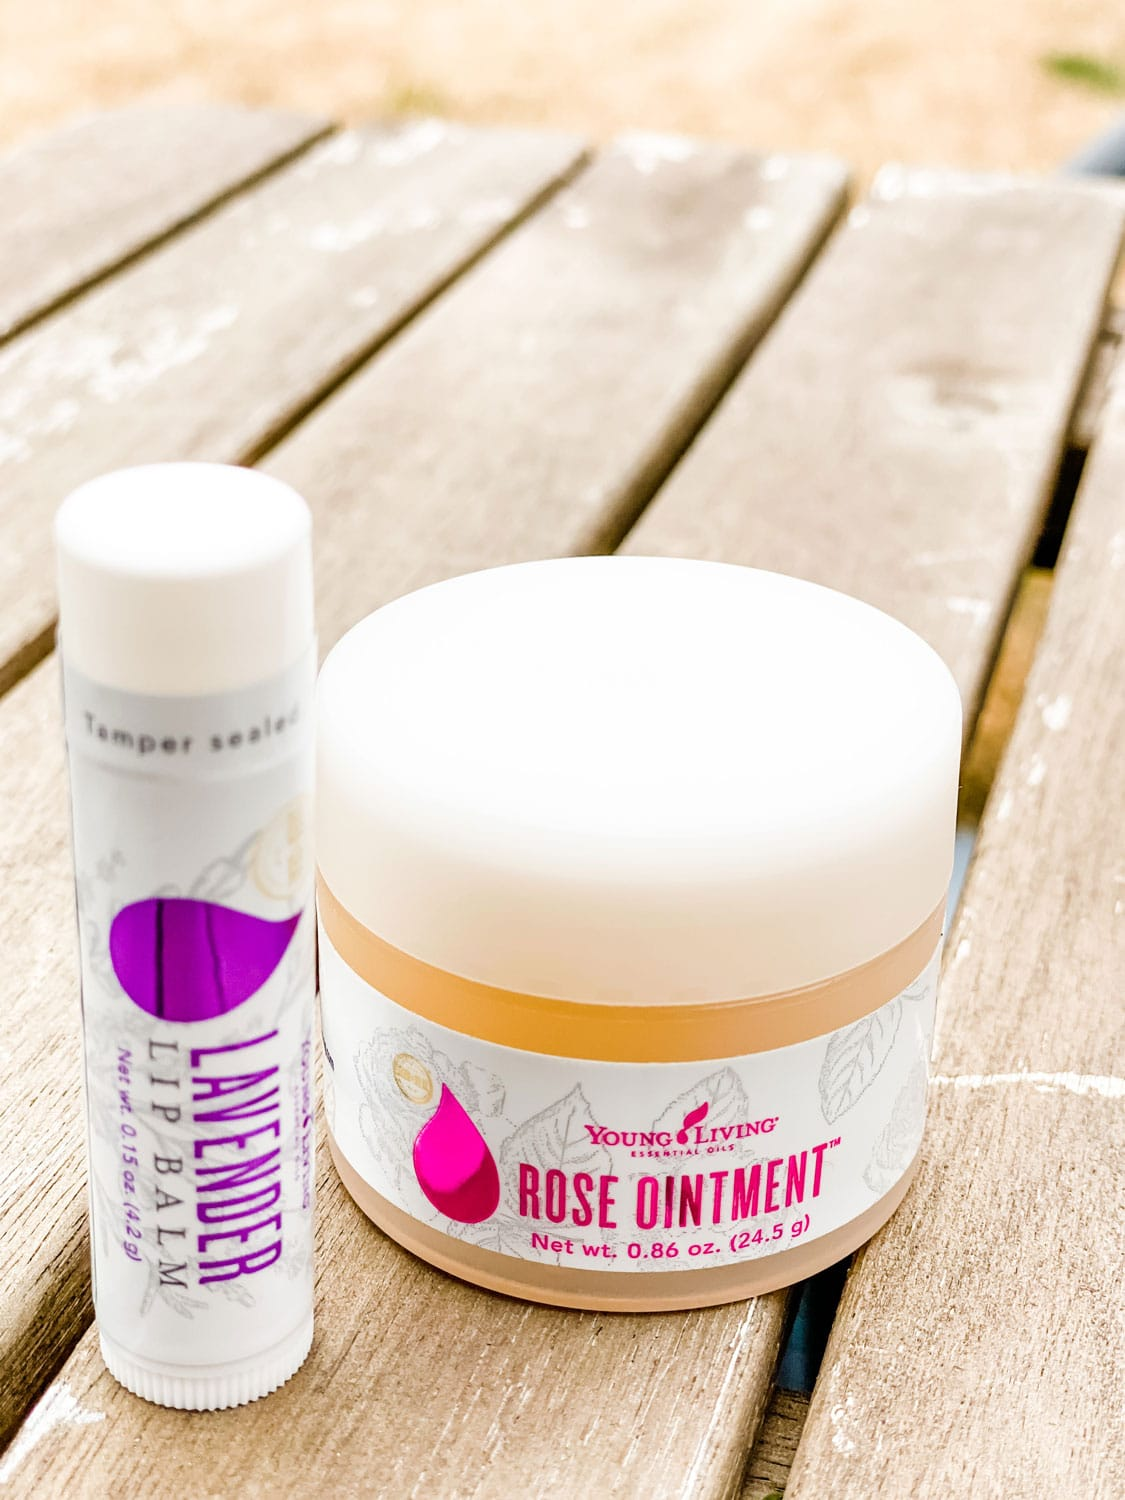 rose ointment and lavender lip balm